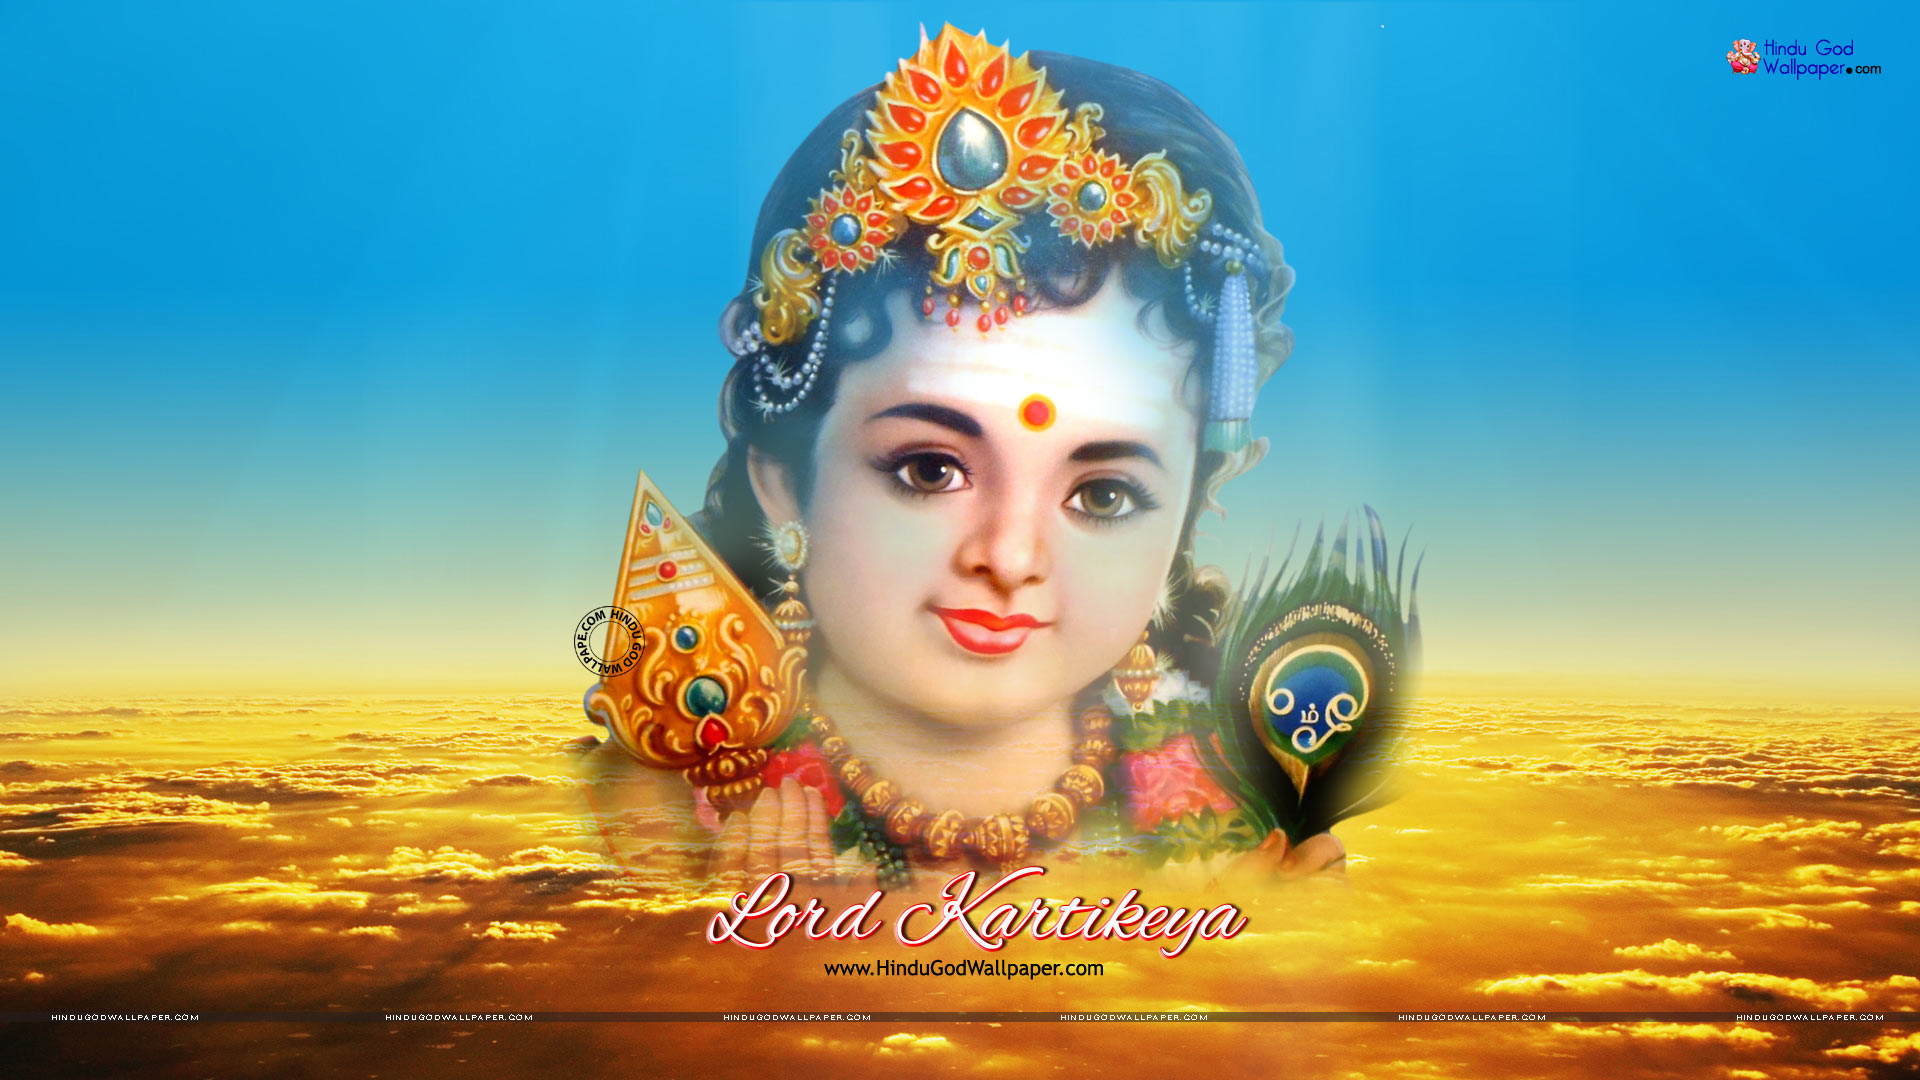 Lord Murugan Wallpapers Photos Images Free Download